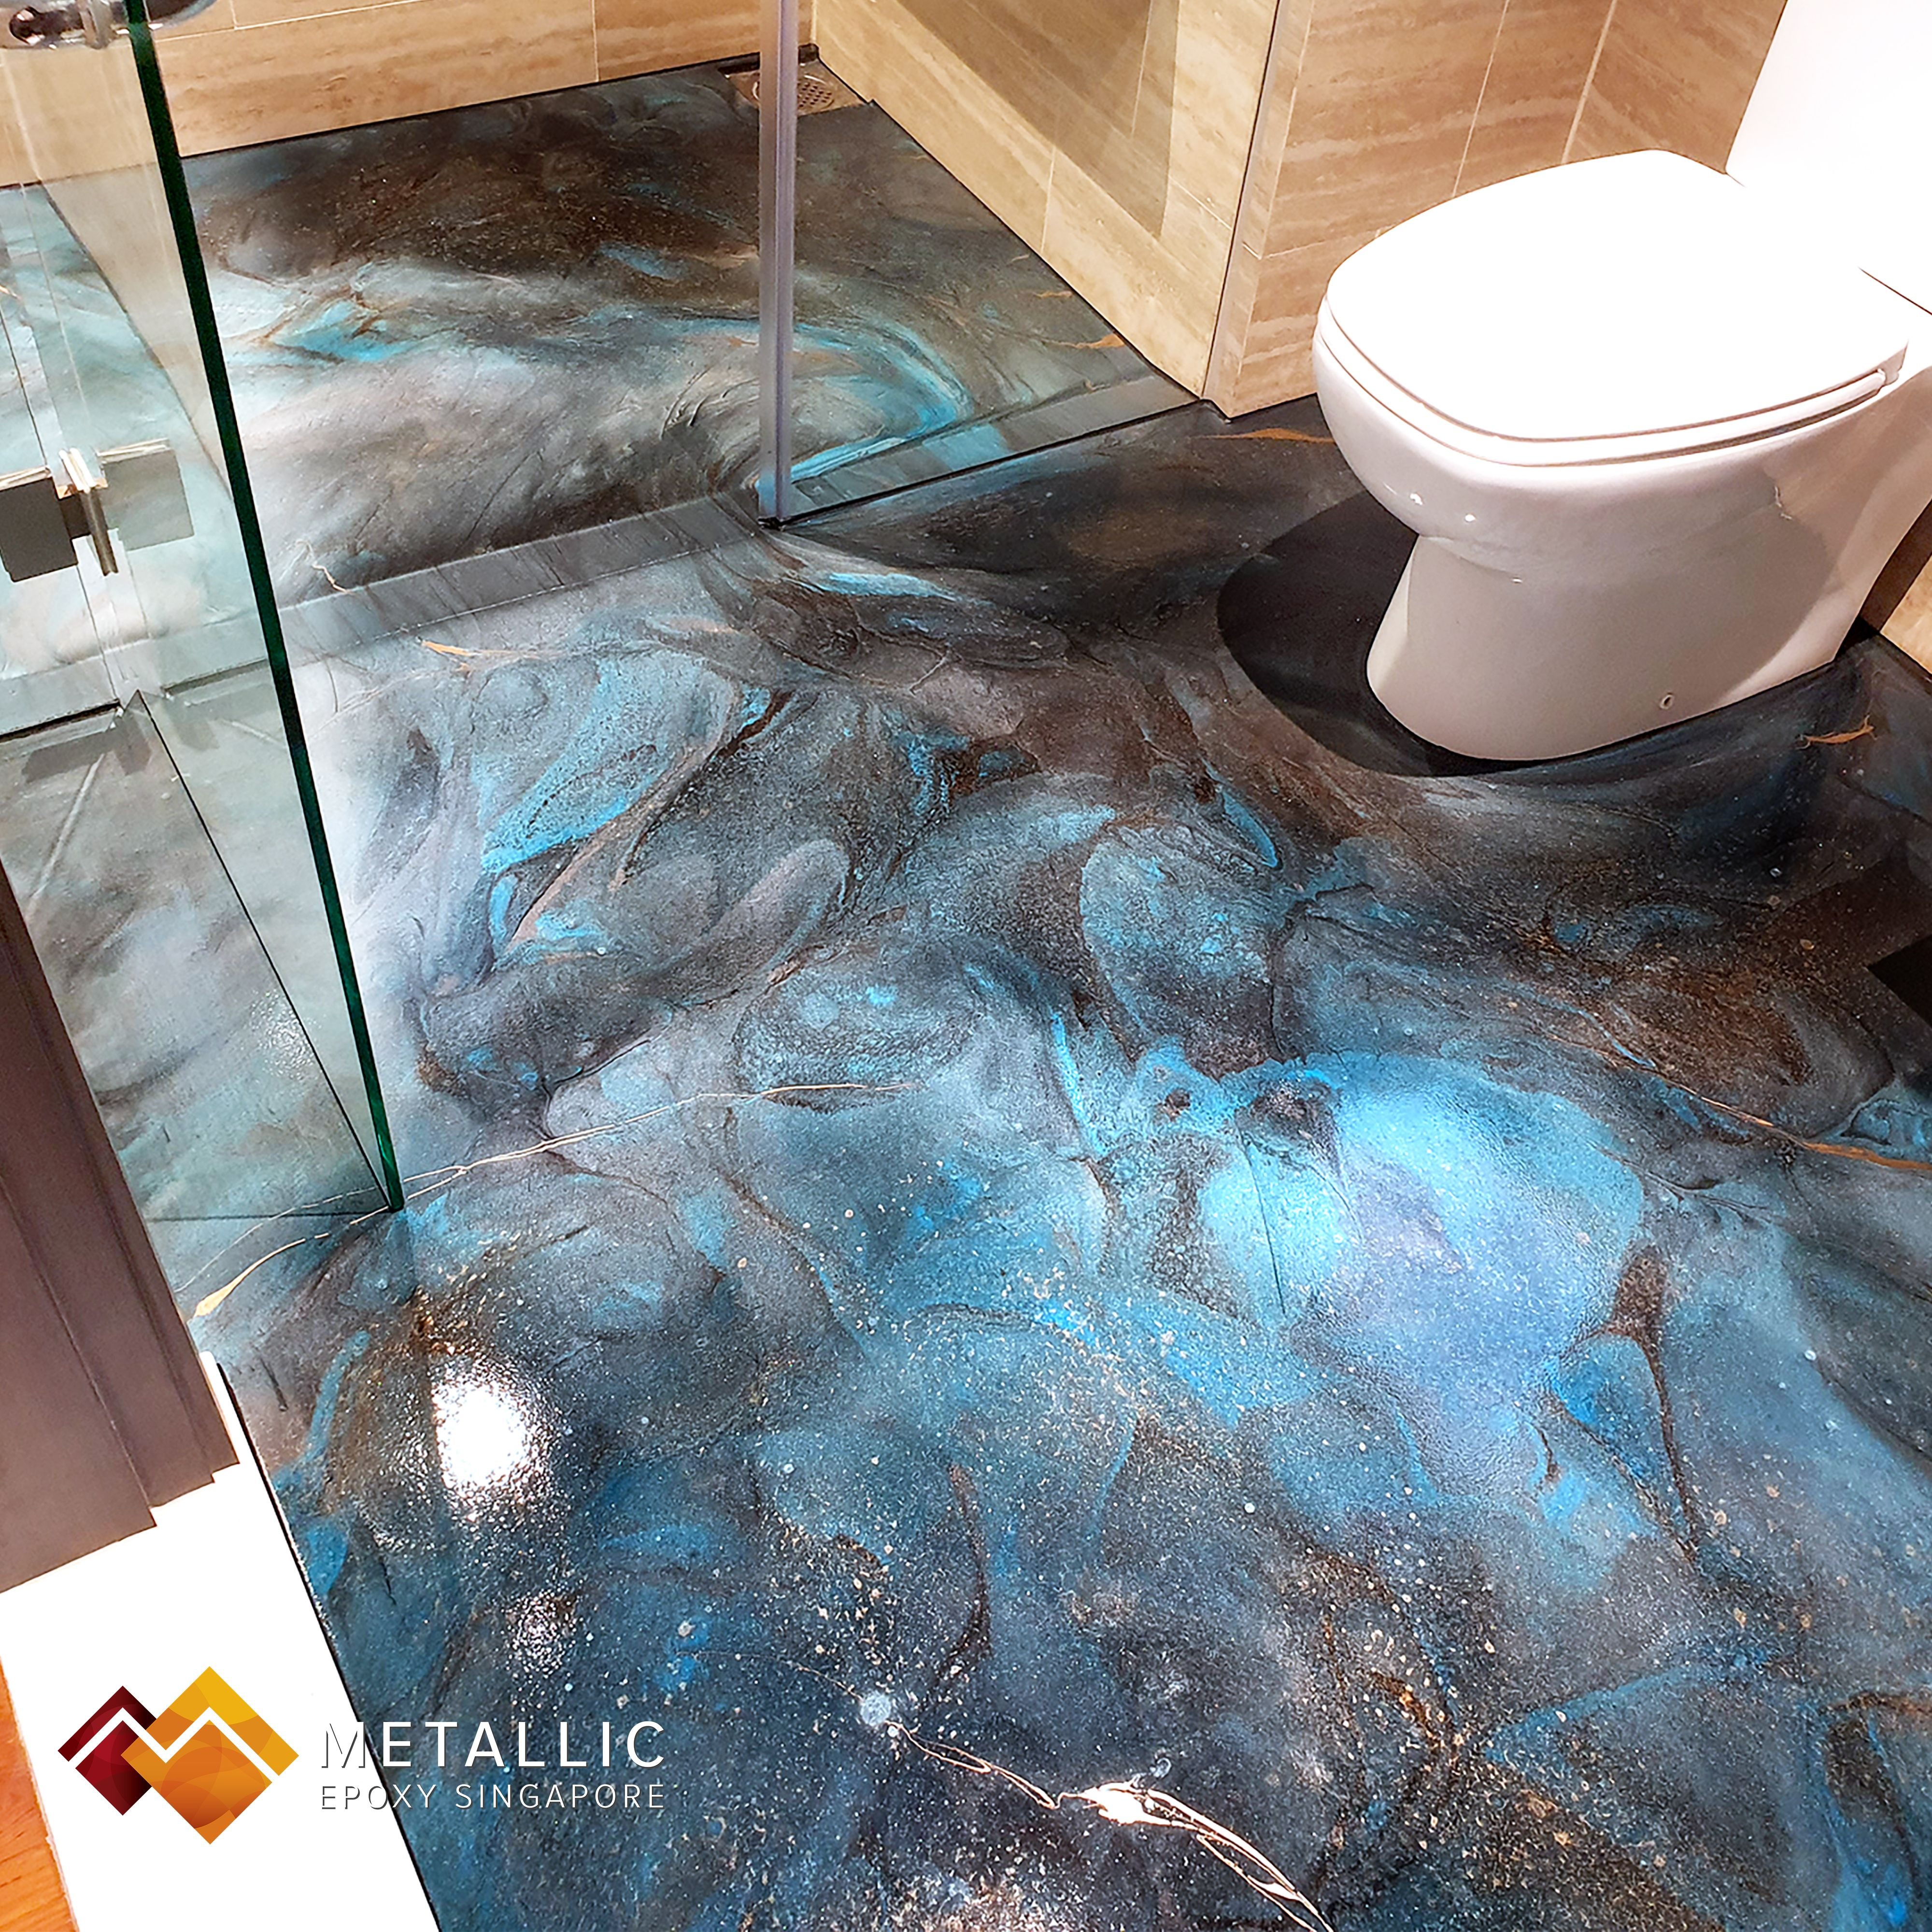 A Star Tacular Metallic Blue Galaxy Theme Design For This Ensuite Floor Coating Give This Small Space An Out Of This World Floor Coating Galaxy Theme Flooring